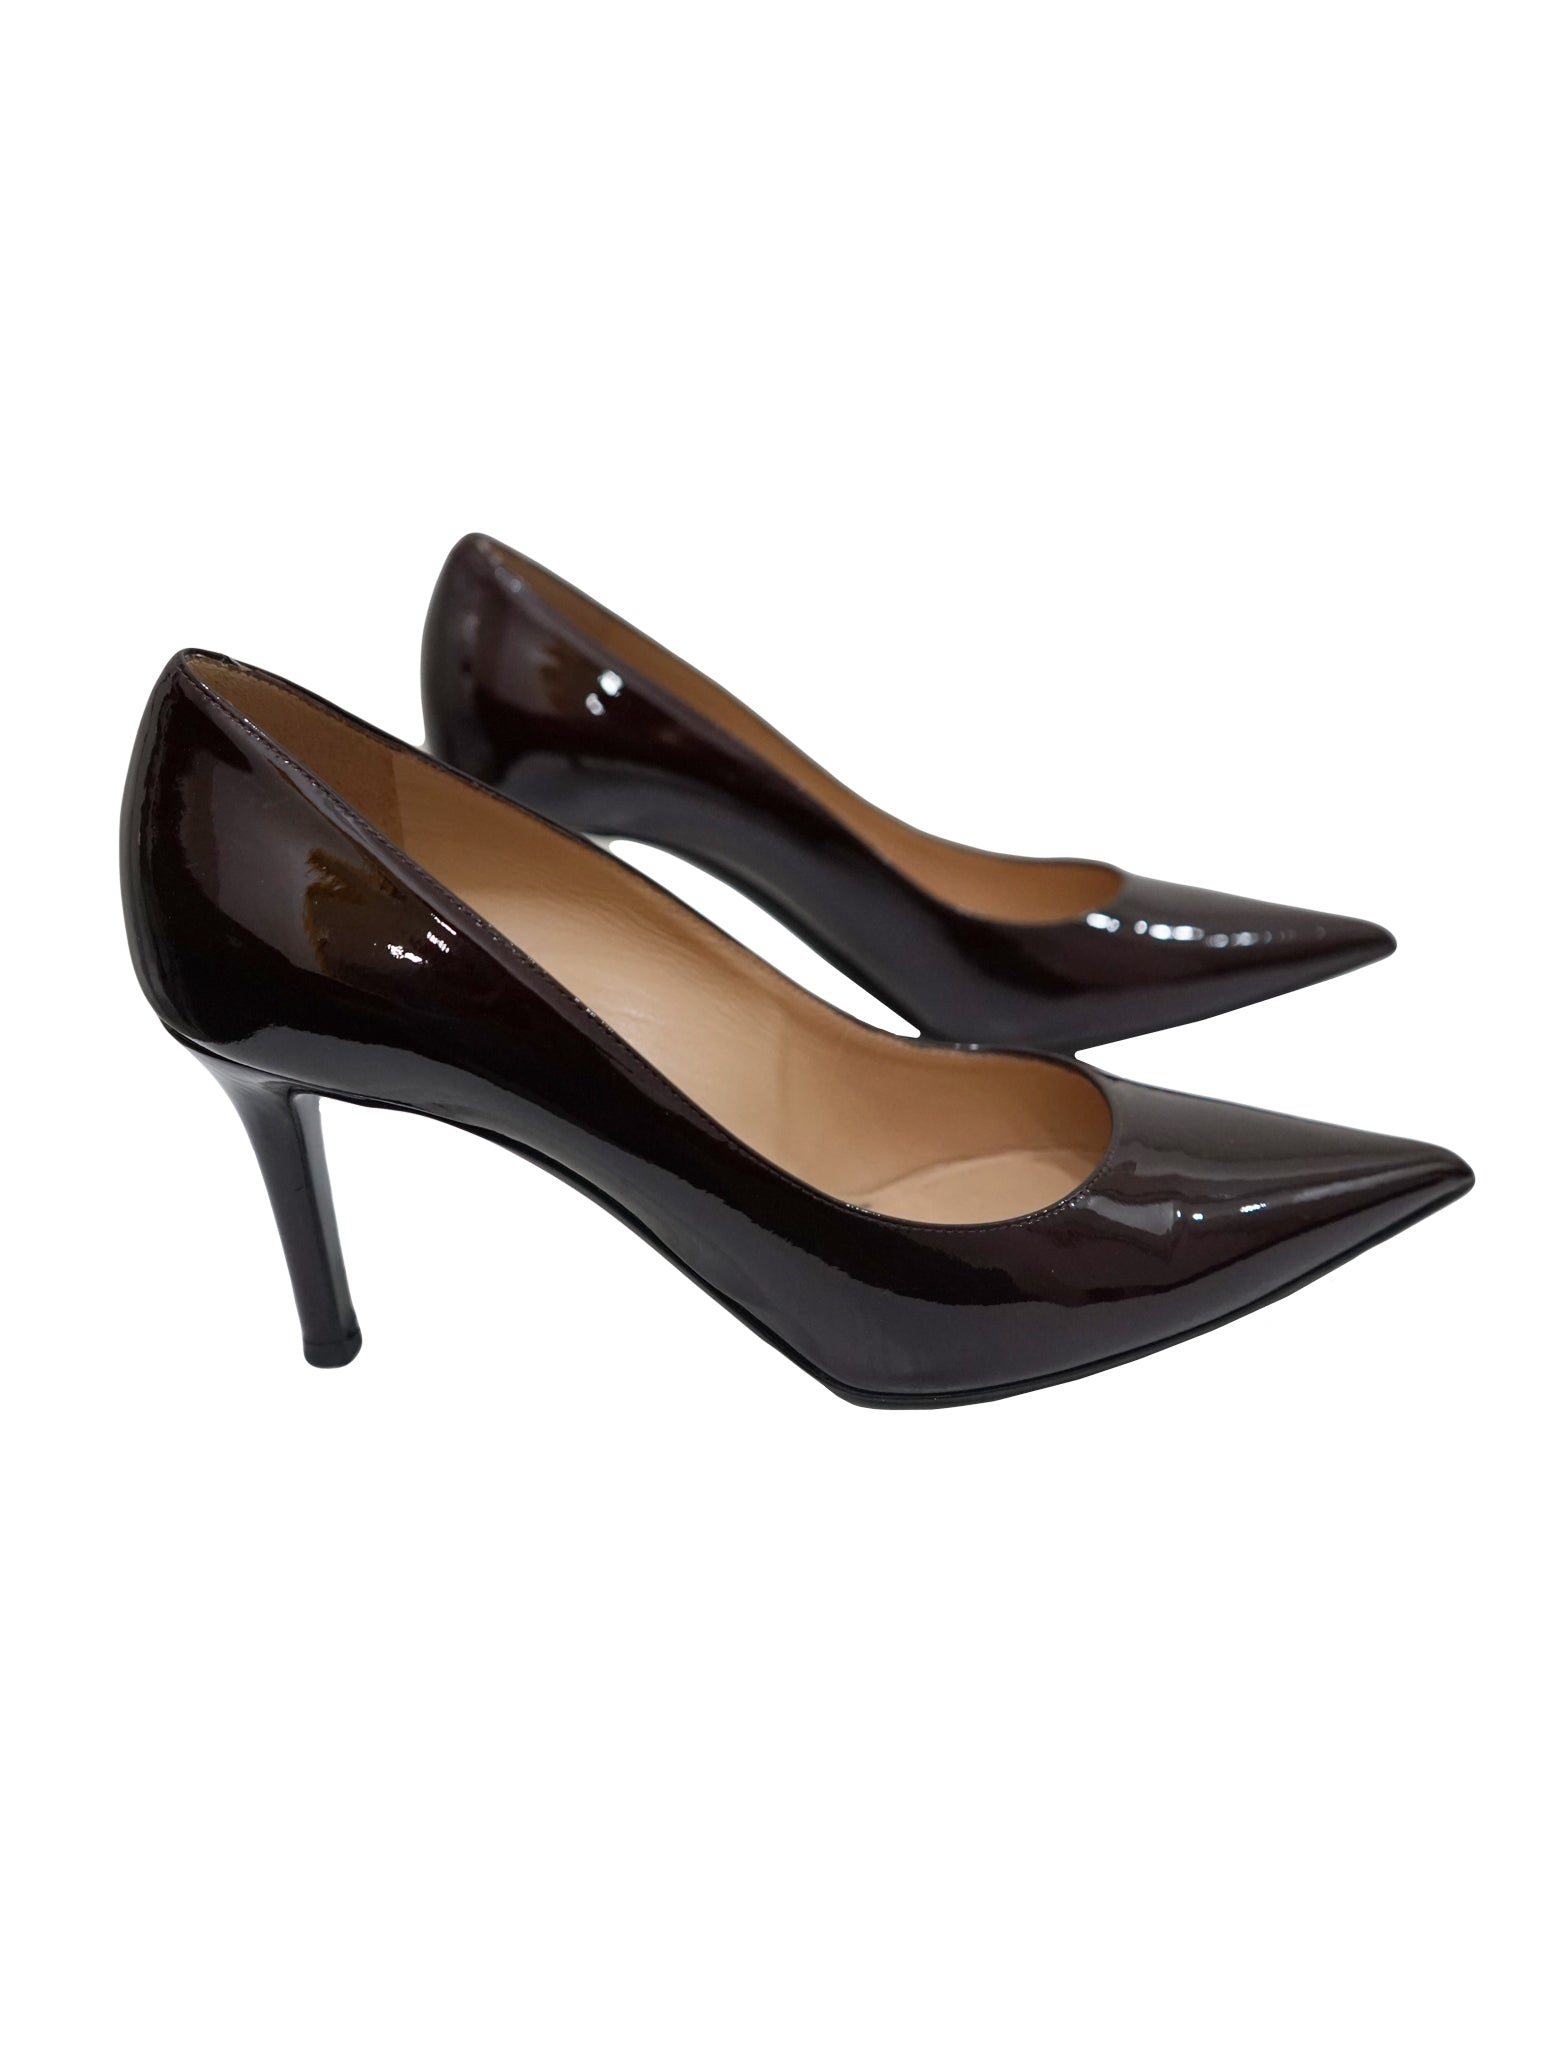 BORDO VERNICE OPERA SHOES